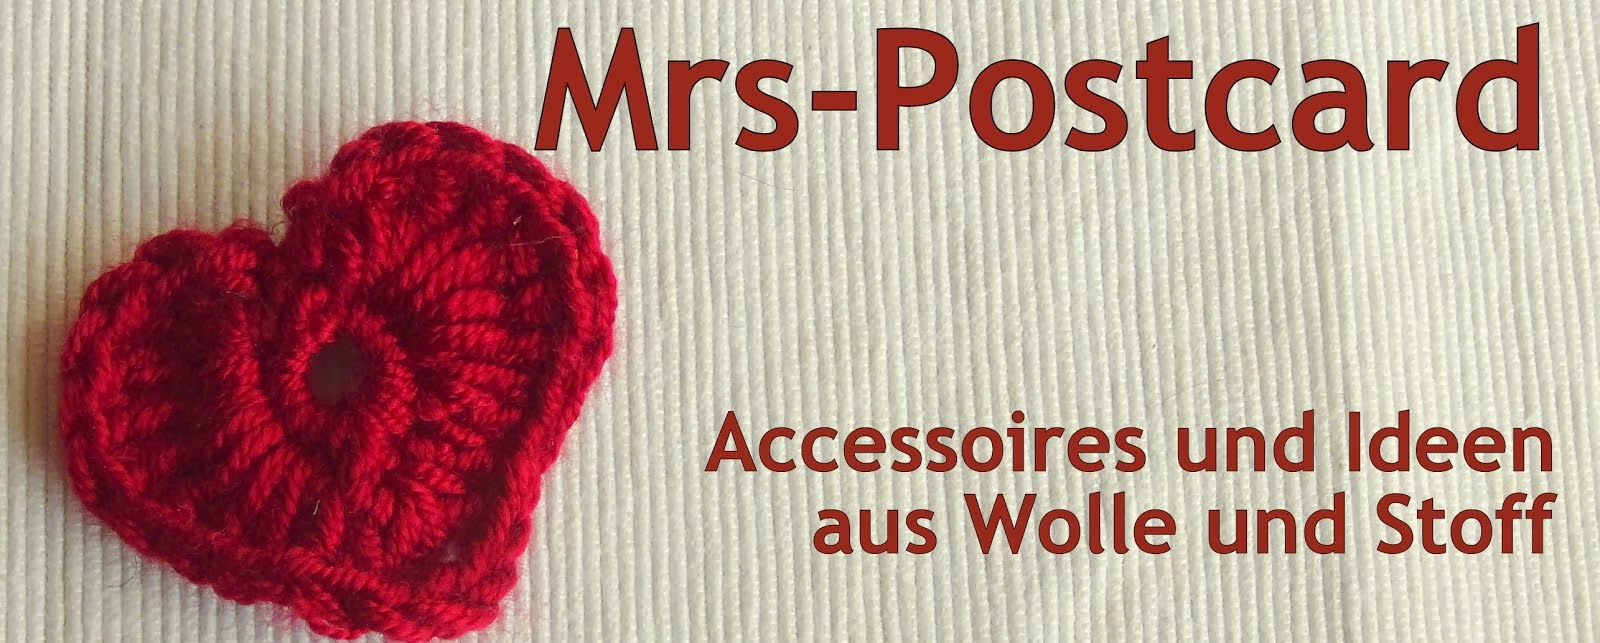 Mrs-Postcard bei Facebook